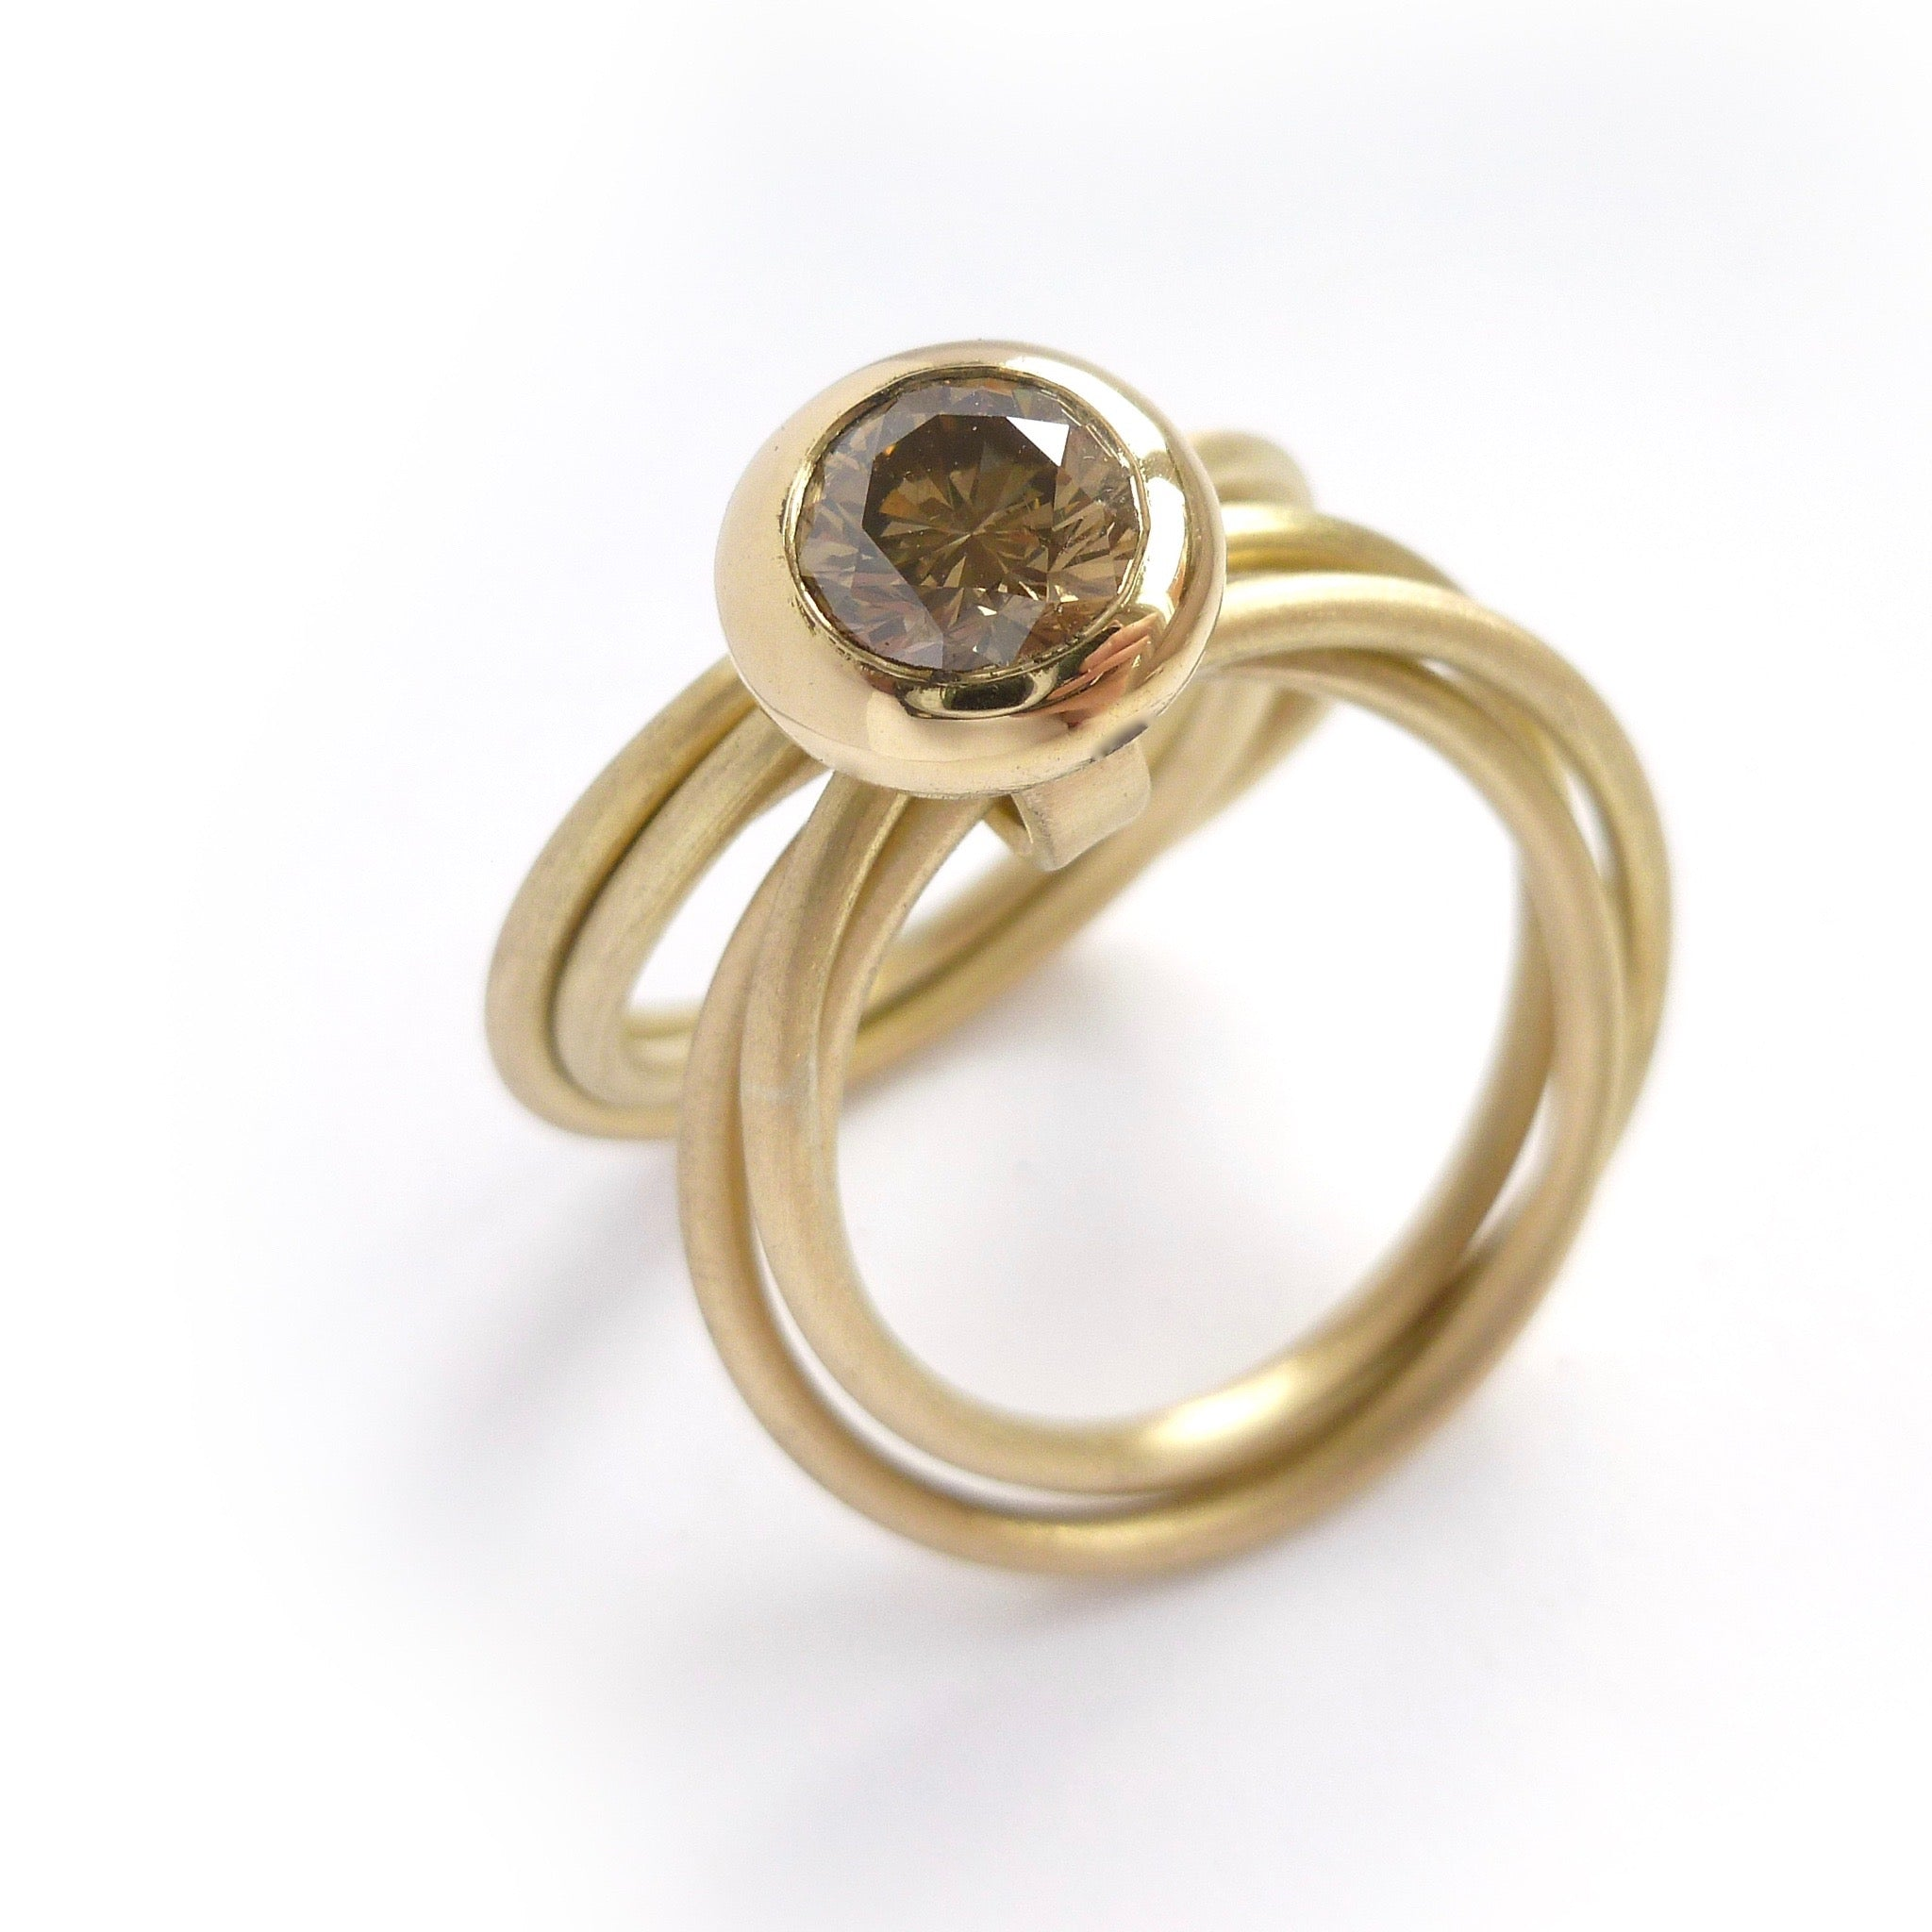 ring solitaire cushion diamond products il by engagement rose fullxfull hand champagne carved cut recycled gold in anueva handmade jewelry